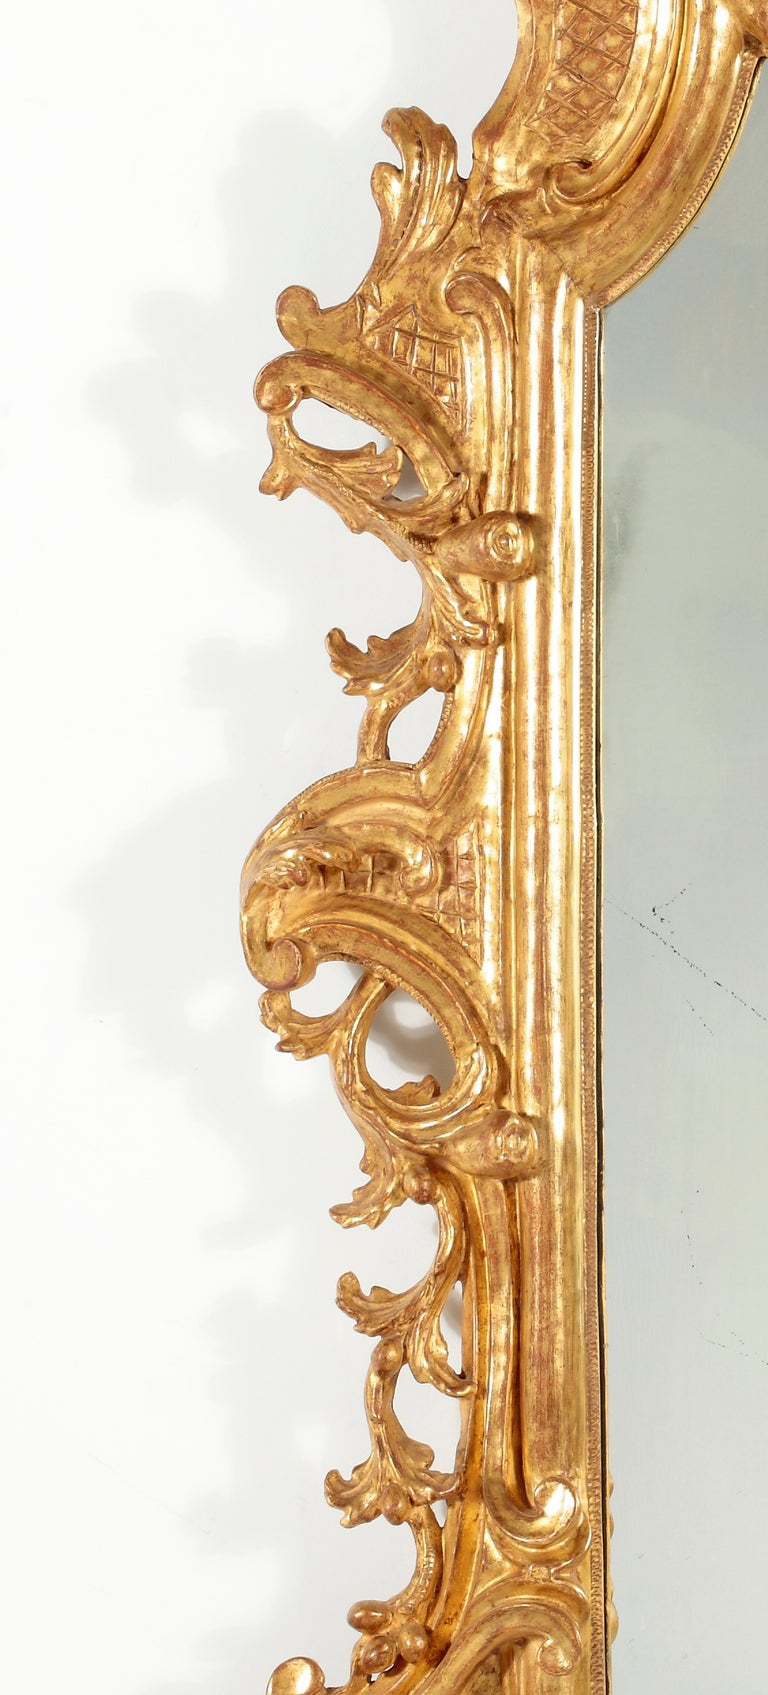 A Fine RococoI Giltwood Mirror, Italy In Excellent Condition For Sale In Sheffield, MA